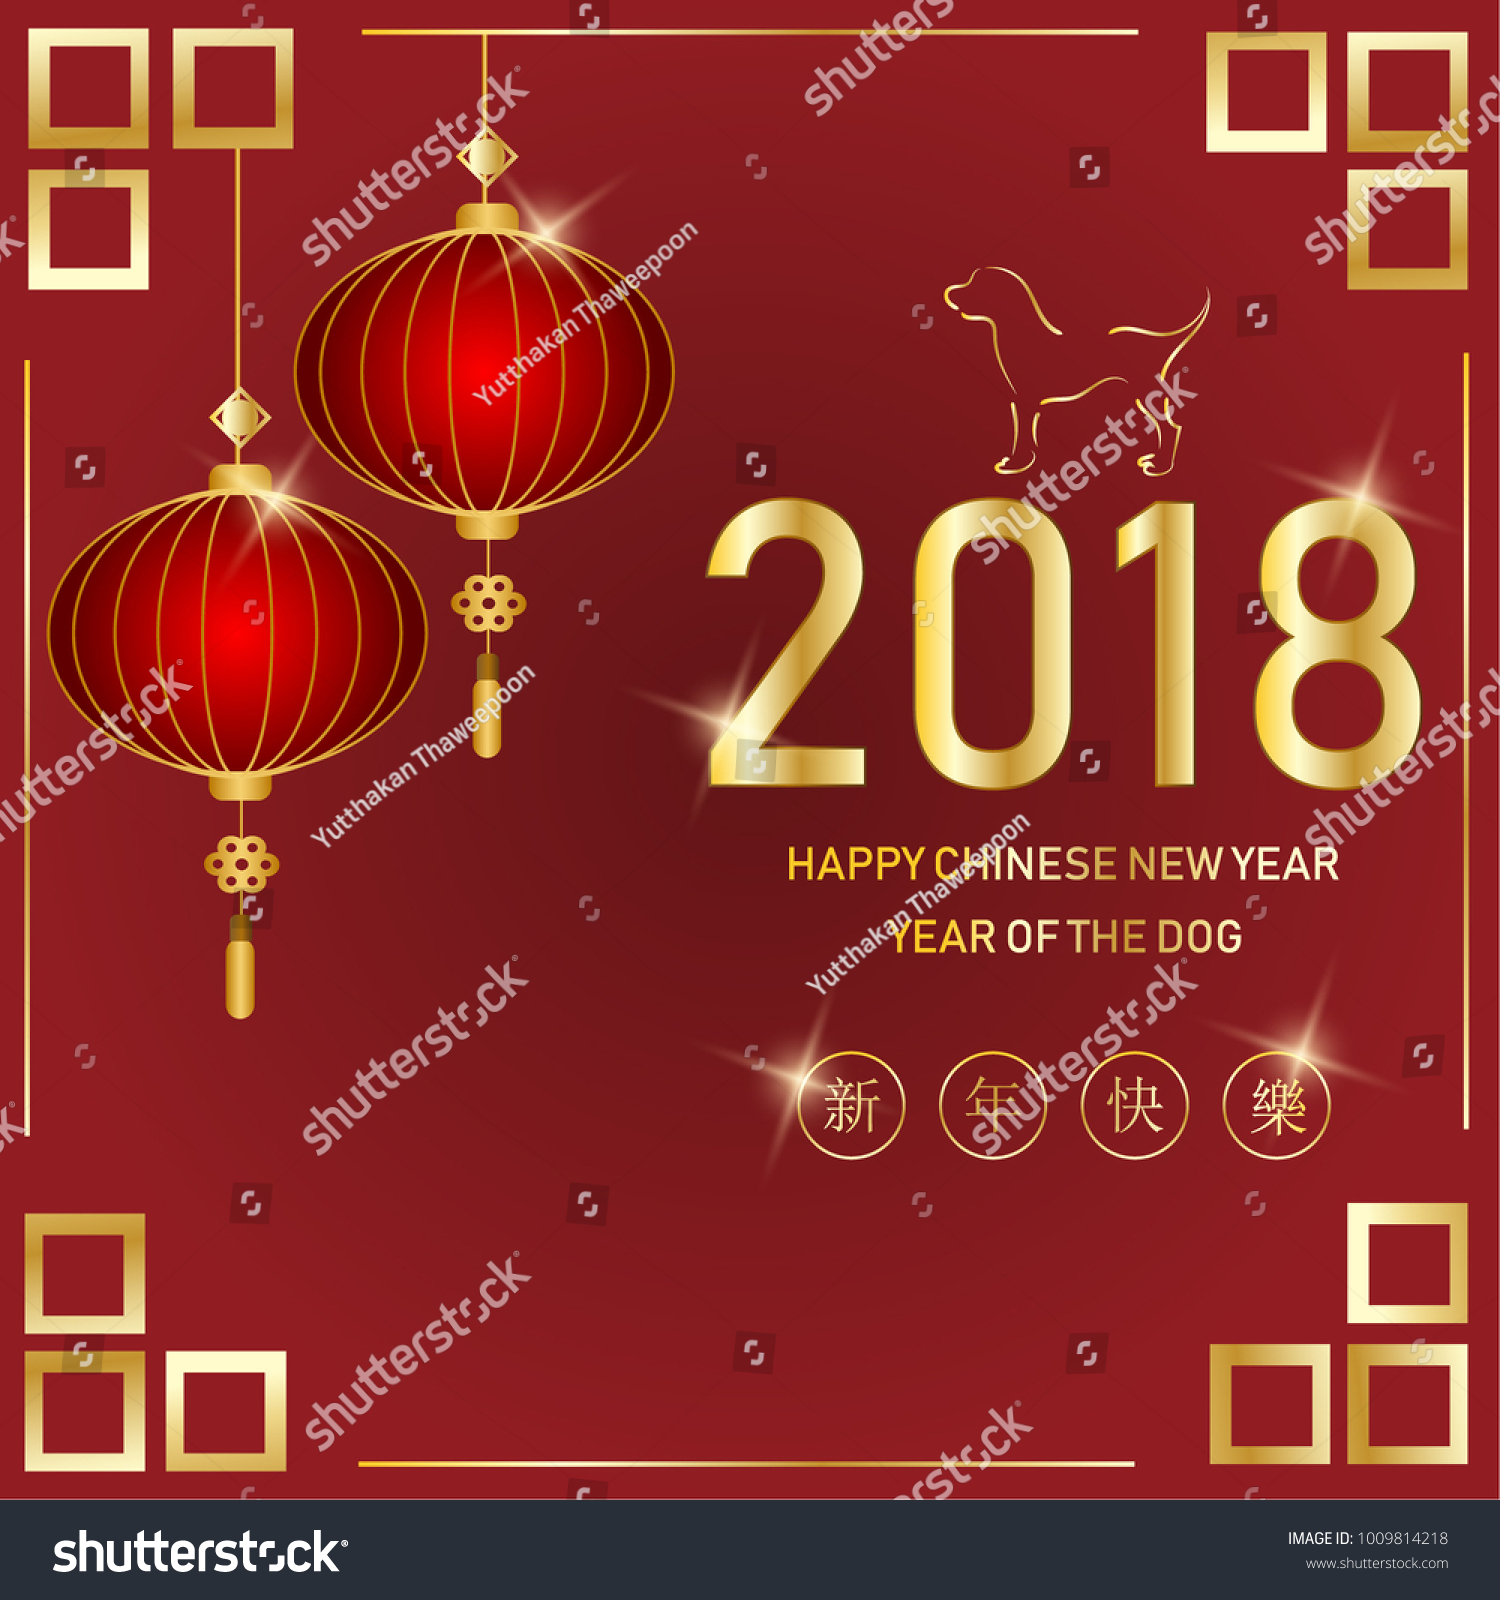 happy chinese new year 2018text card stock vector hd royalty free